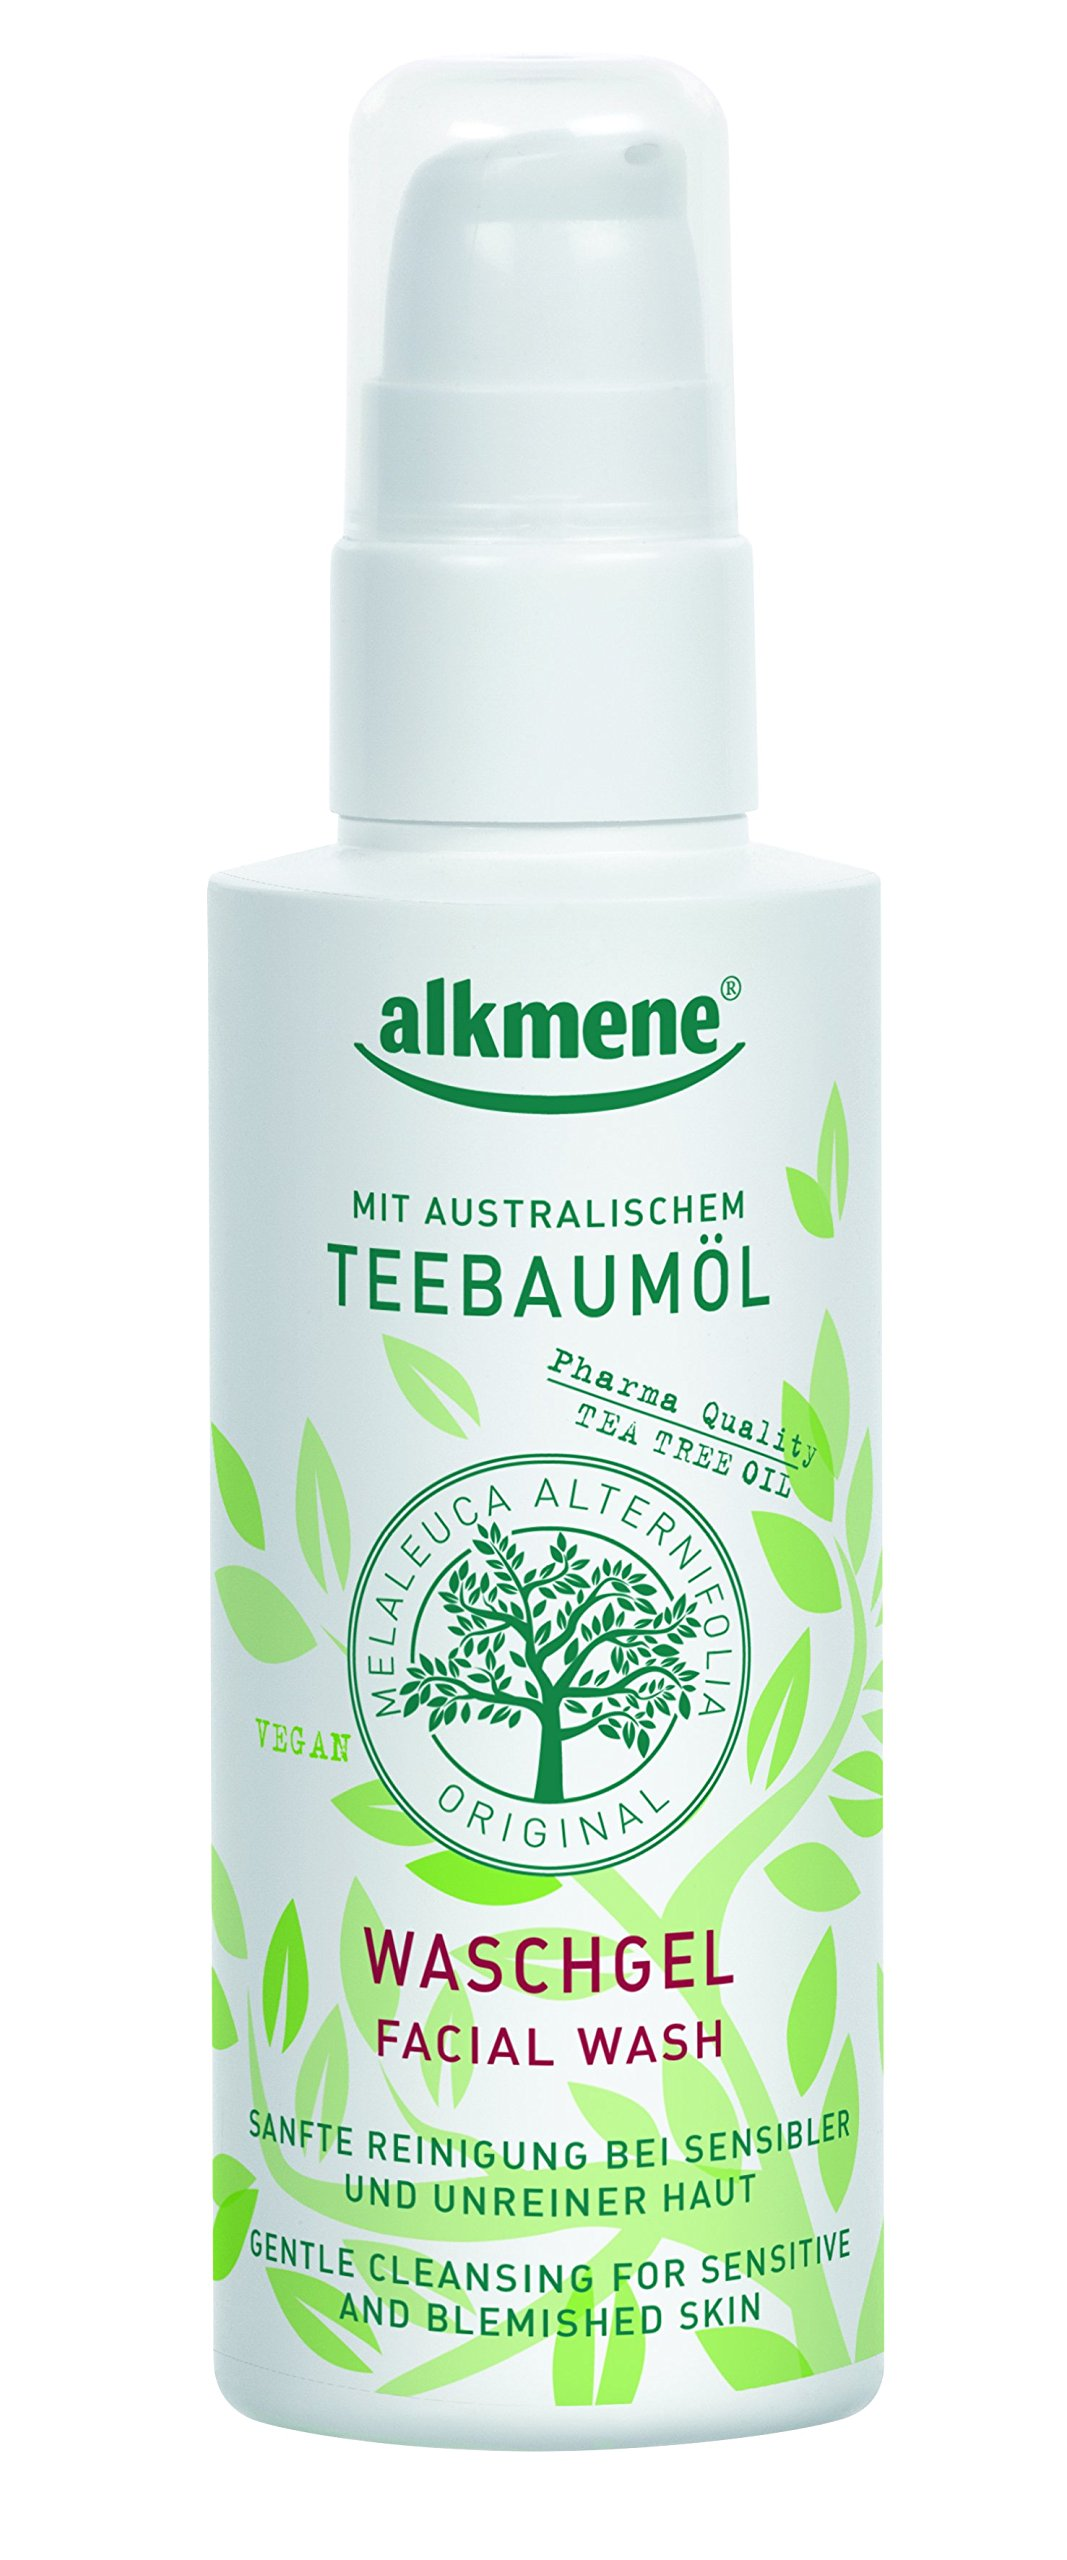 Tea Tree Oil Facial Wash Imported from Germany Vegan Paraben Free Detoxifying Face Cleanser For Oily Acne Prone & Sensitive Skin With Pharmaceutical Grade Tea Tree Oil 150 ml By Alkmene